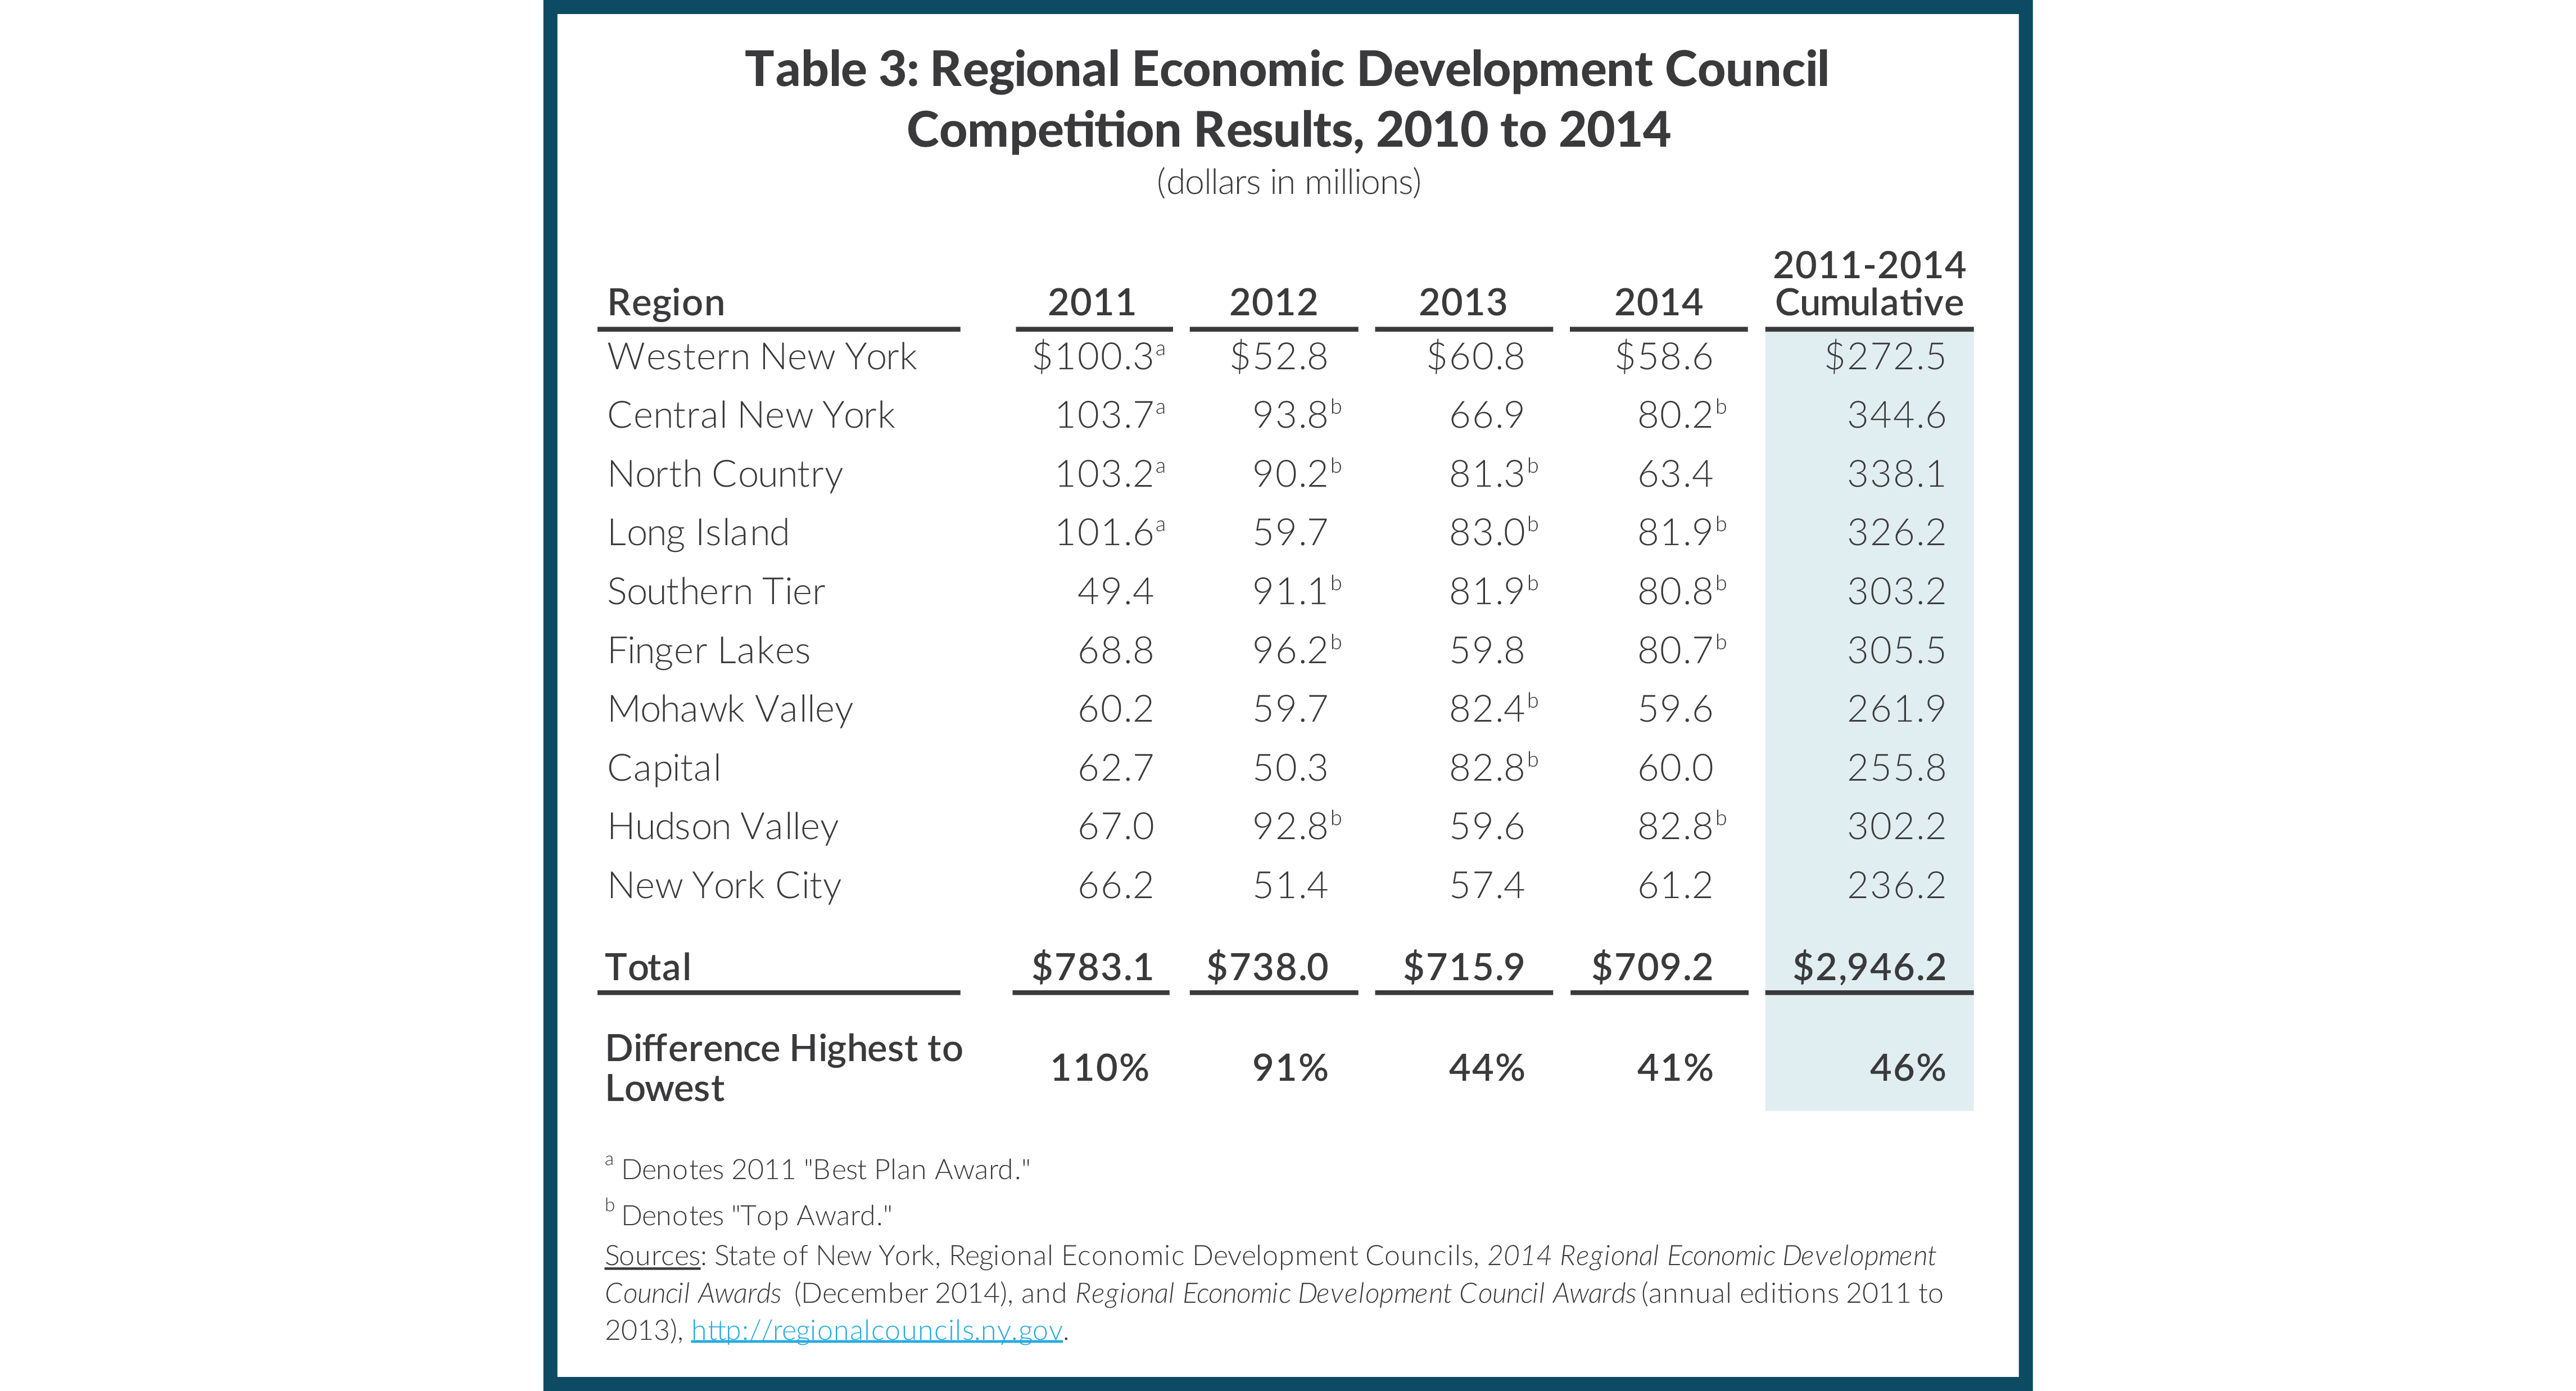 Table 3: Regional Economic Development Council Competition Results, 2010 to 2014